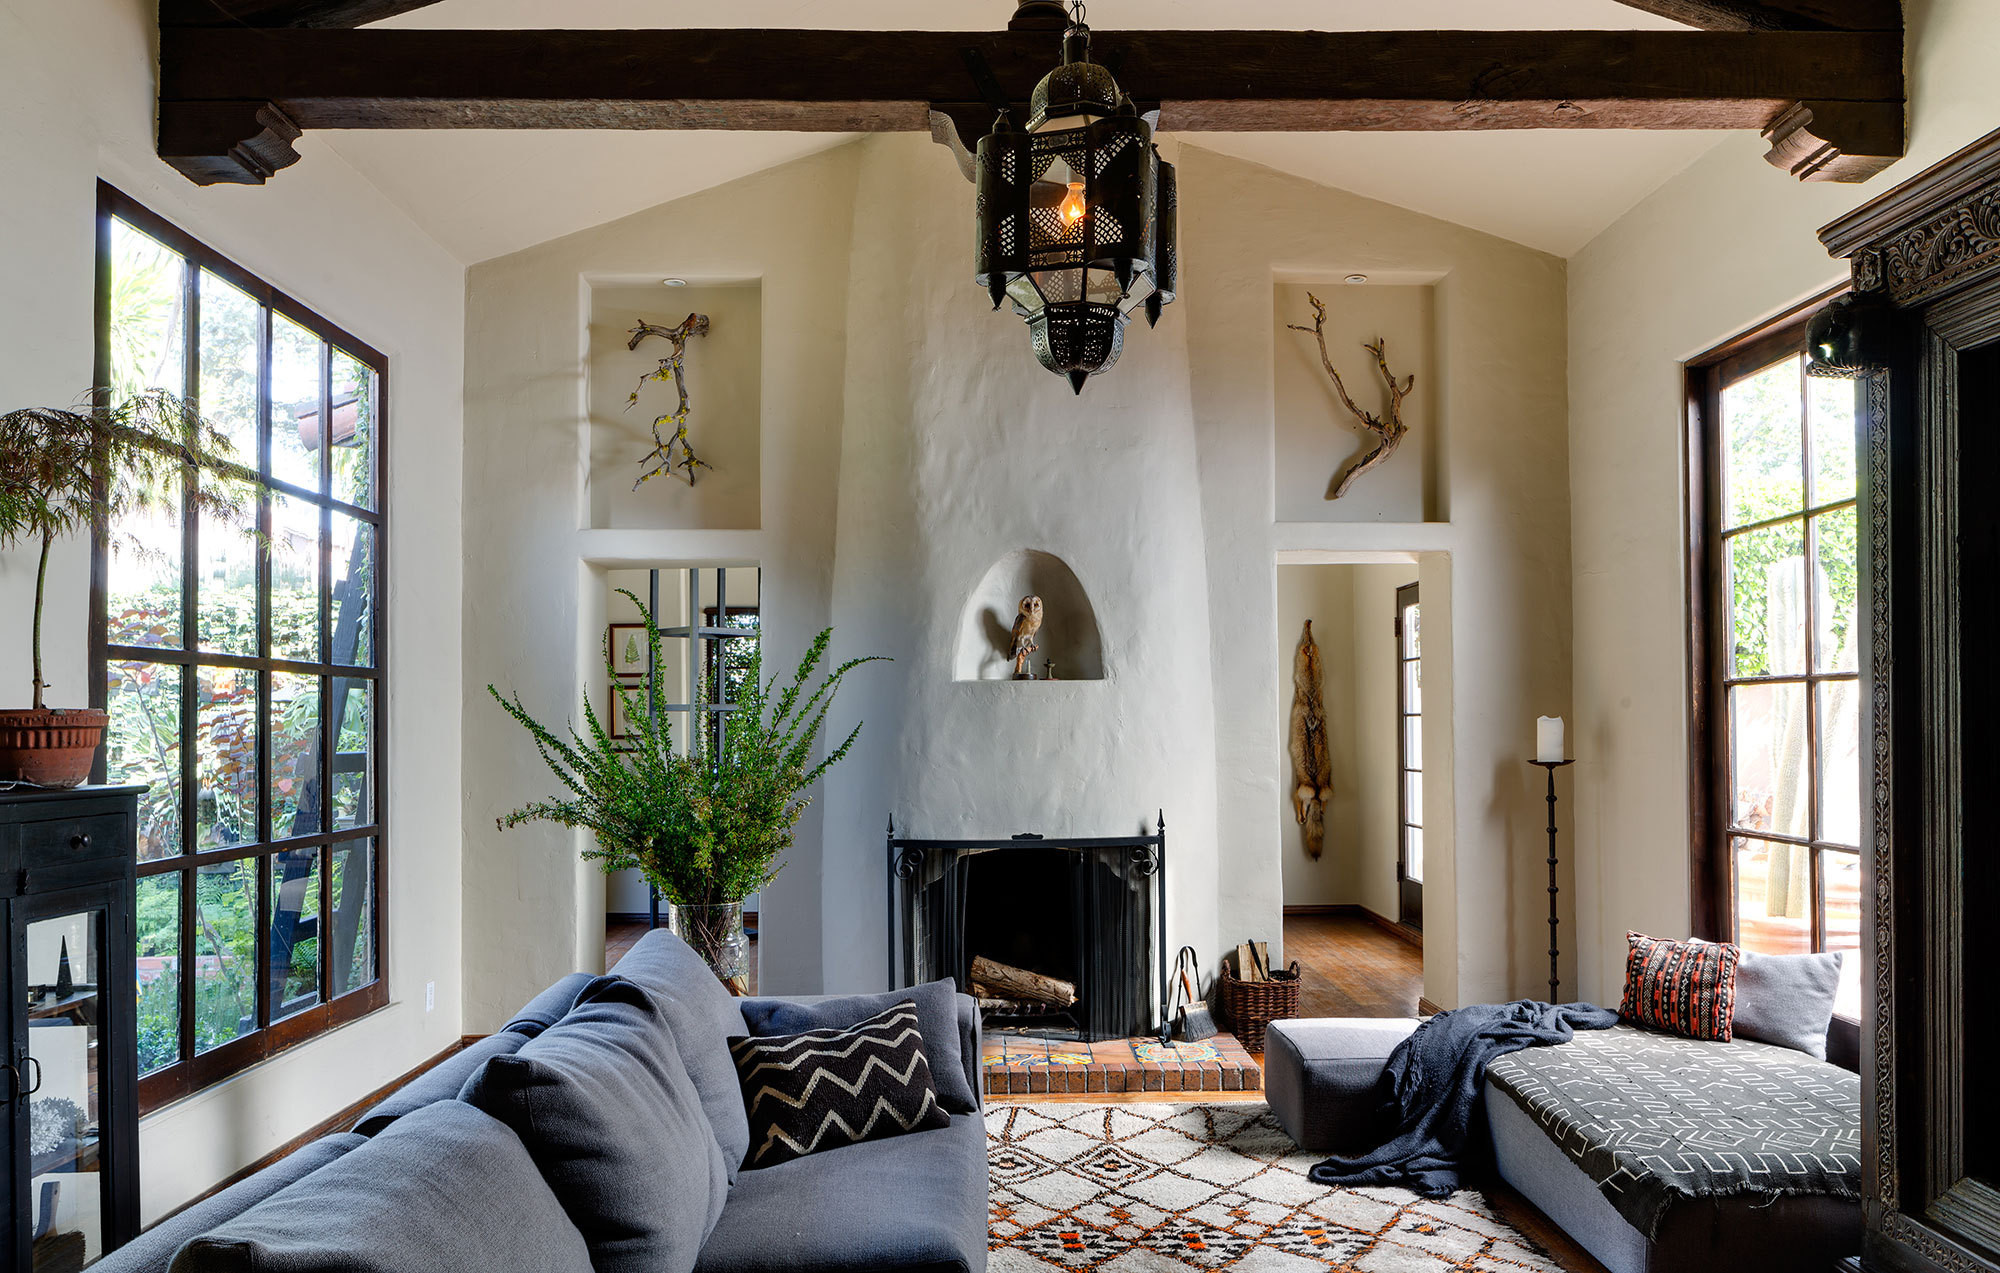 In the sunken living room, wall niches display sculptural objets from nature and draw attention to the high ceilings and handsome wood beams.